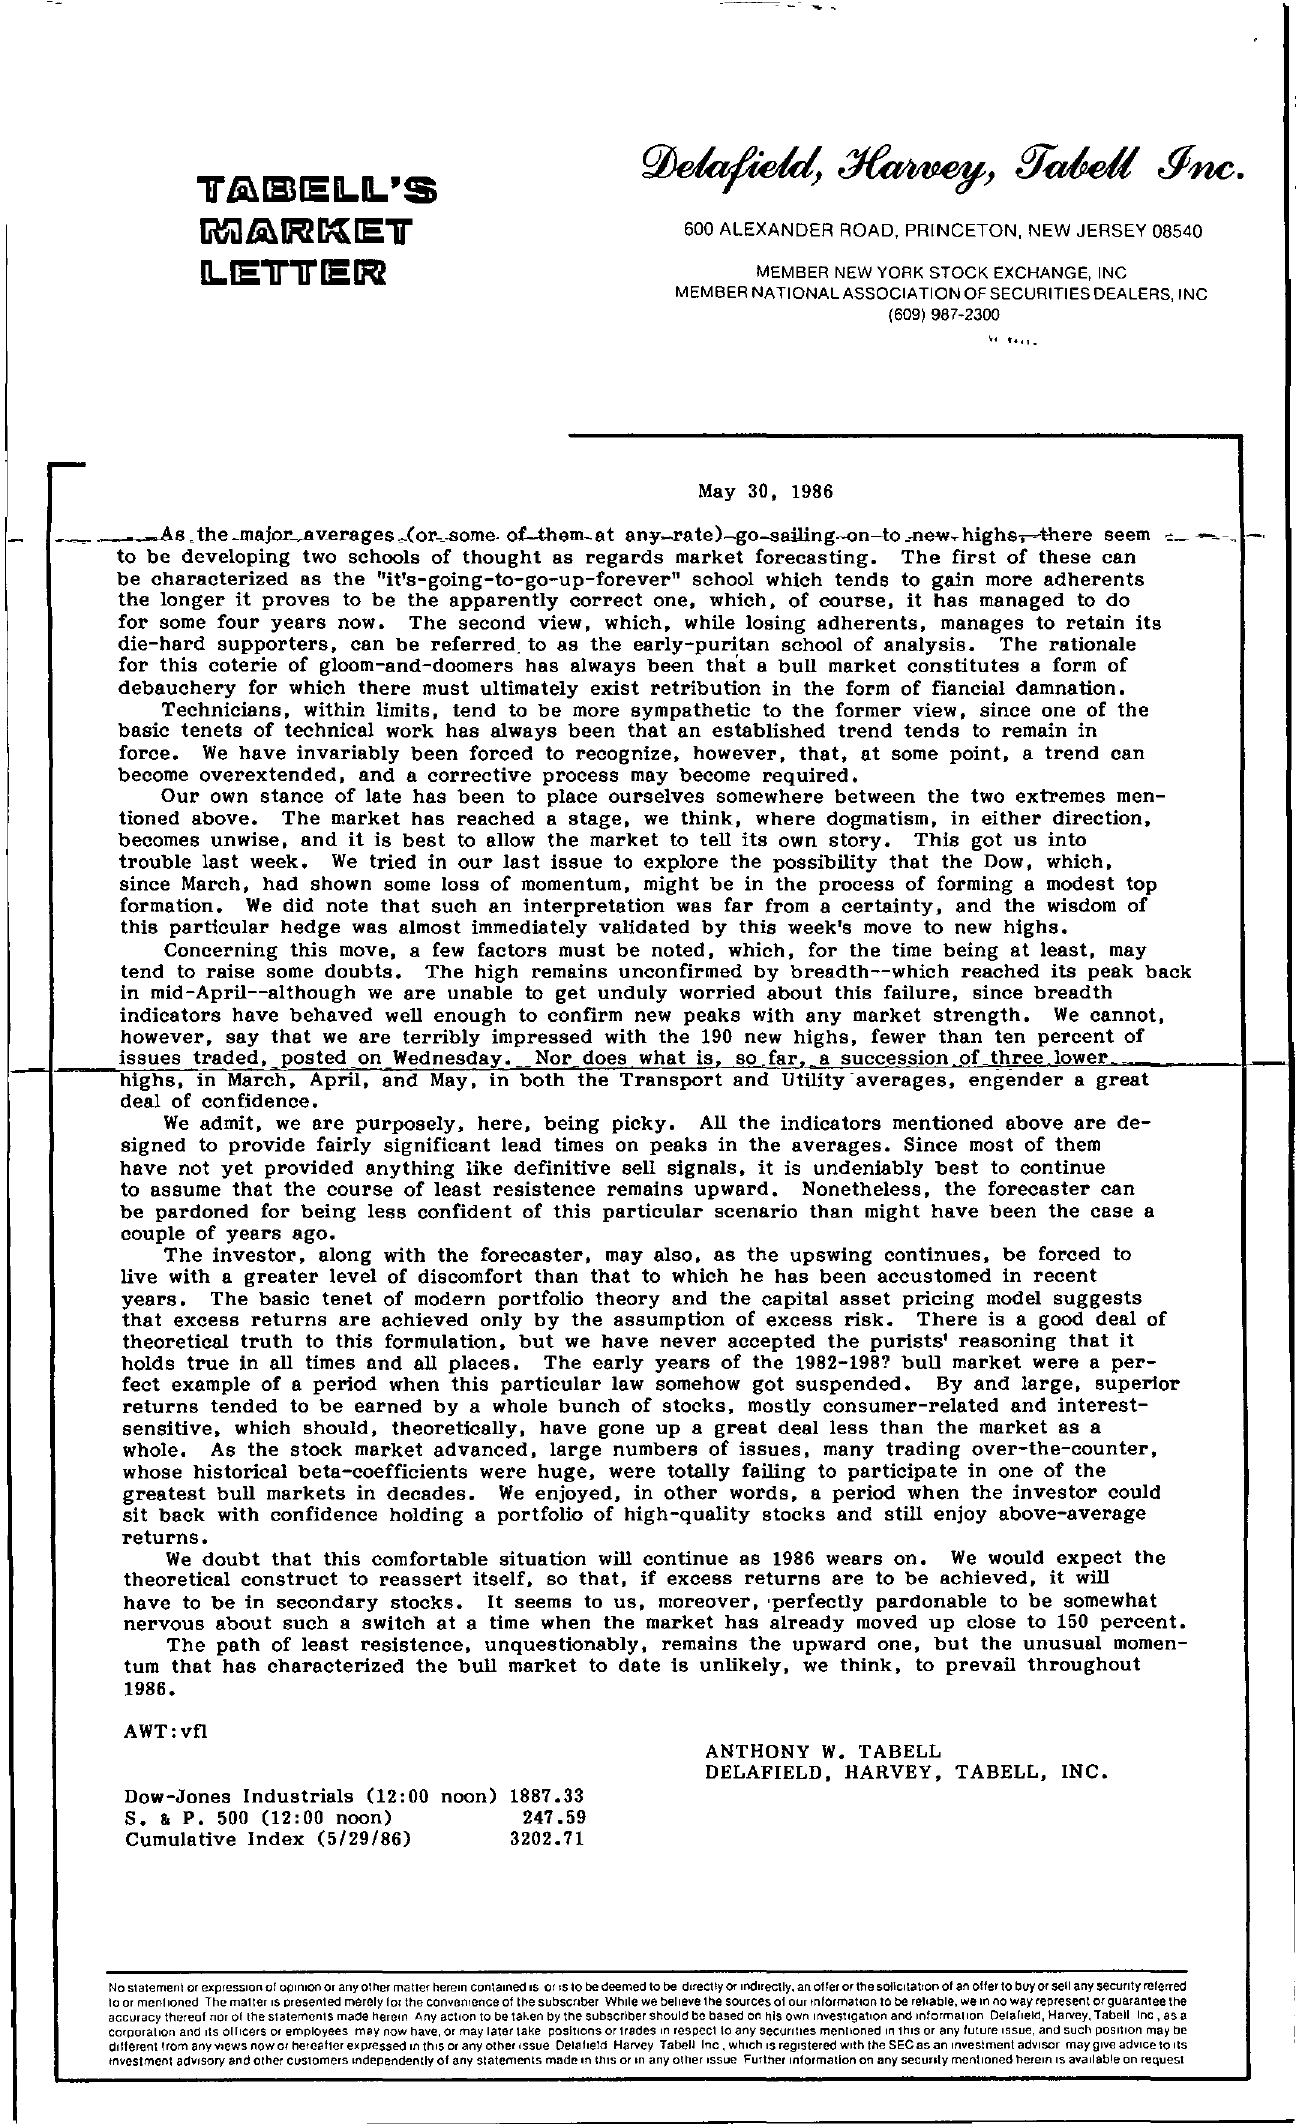 Tabell's Market Letter - May 30, 1986